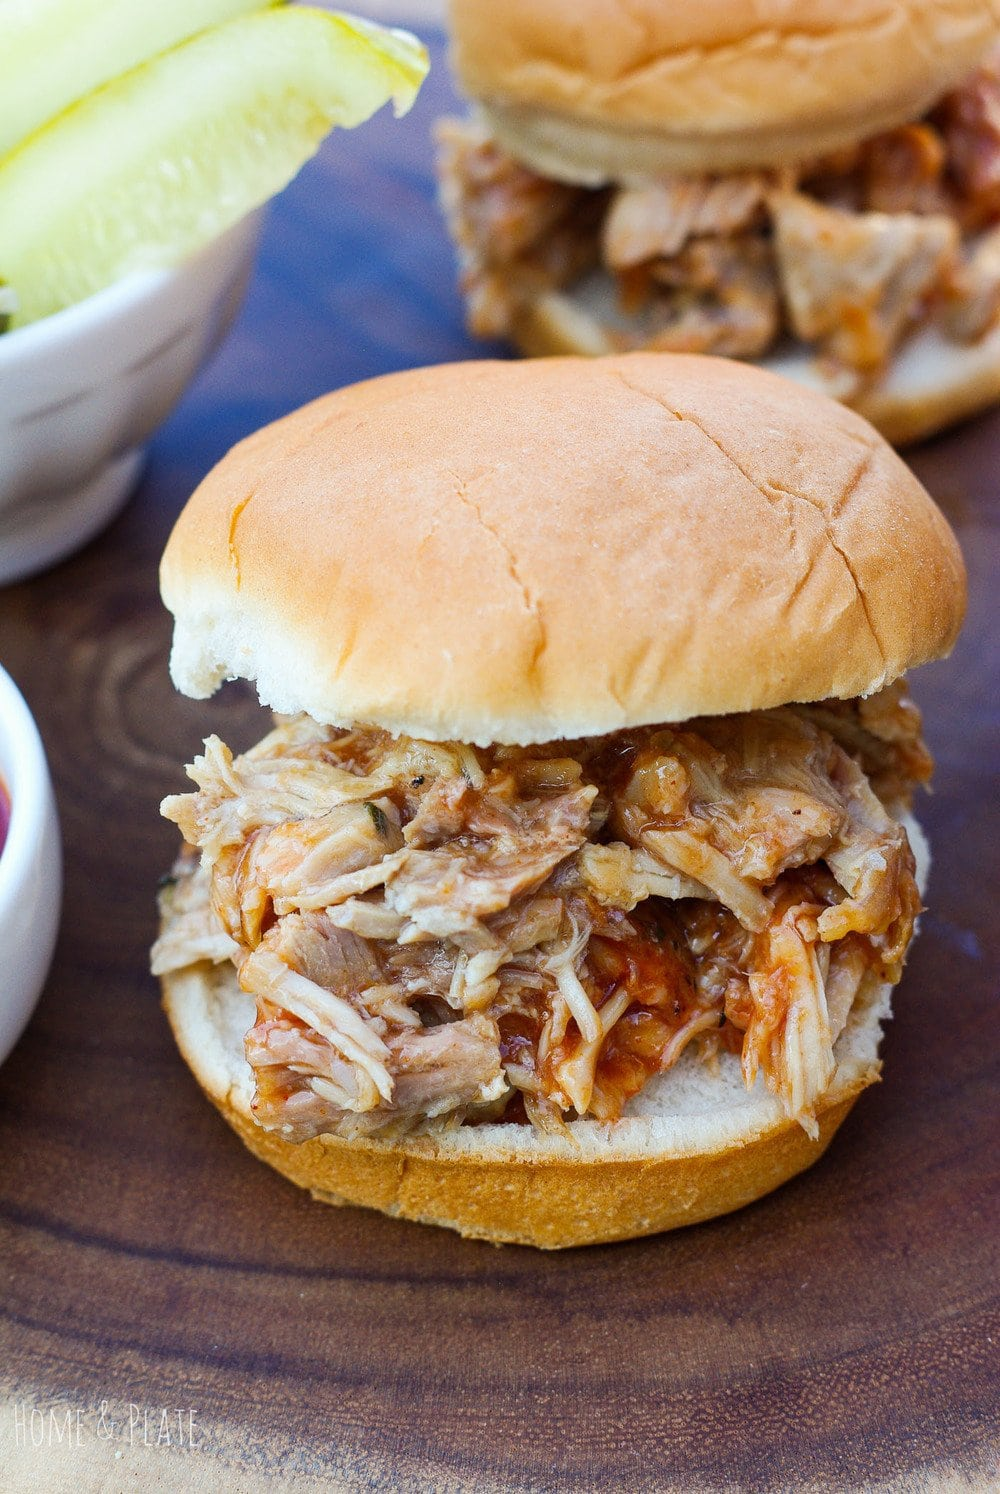 Barbecued Pulled Pork Sandwiches